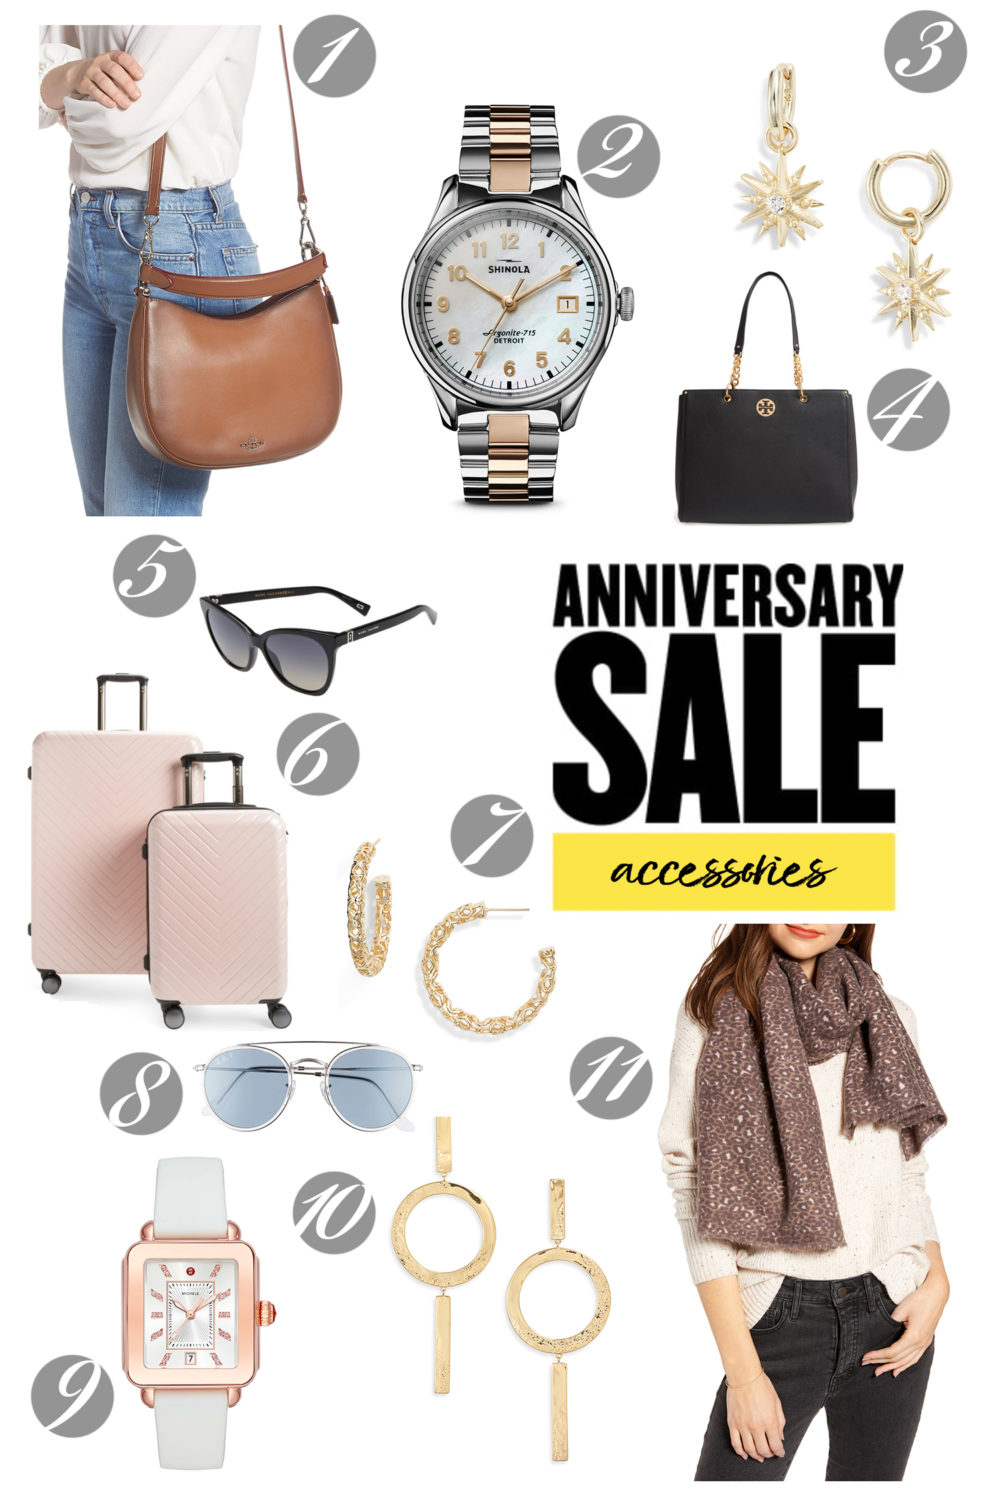 Nordstrom Anniversary Sale | Nordstrom Anniversary Sale Accessories | Shinola Watch | Ray Ban Sunglasses | Michele Watch | Coach Satchel